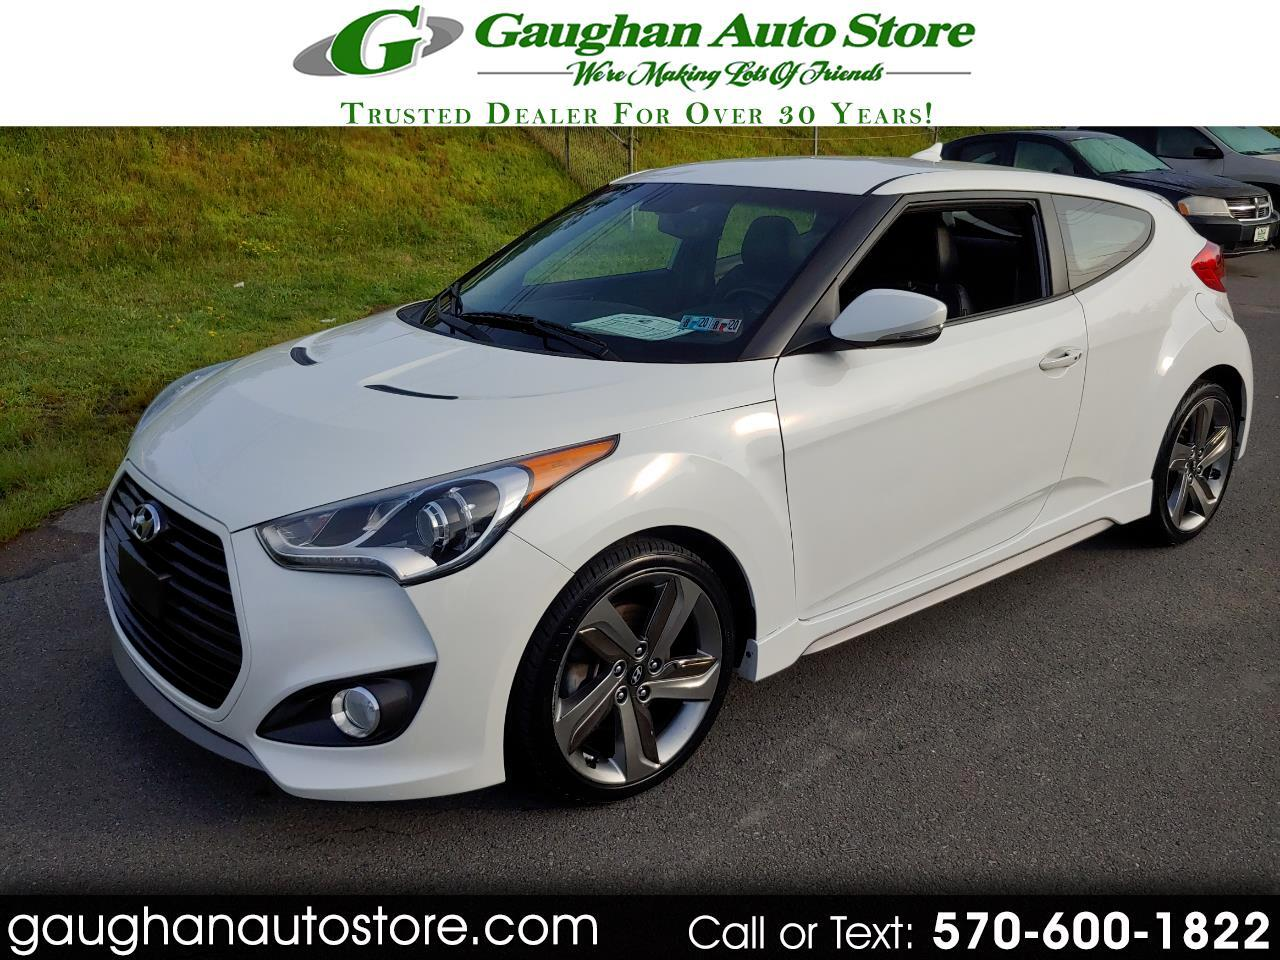 2015 Hyundai Veloster 3DR TURBO CP/HEATED LEATHER SEATS/CAMERA